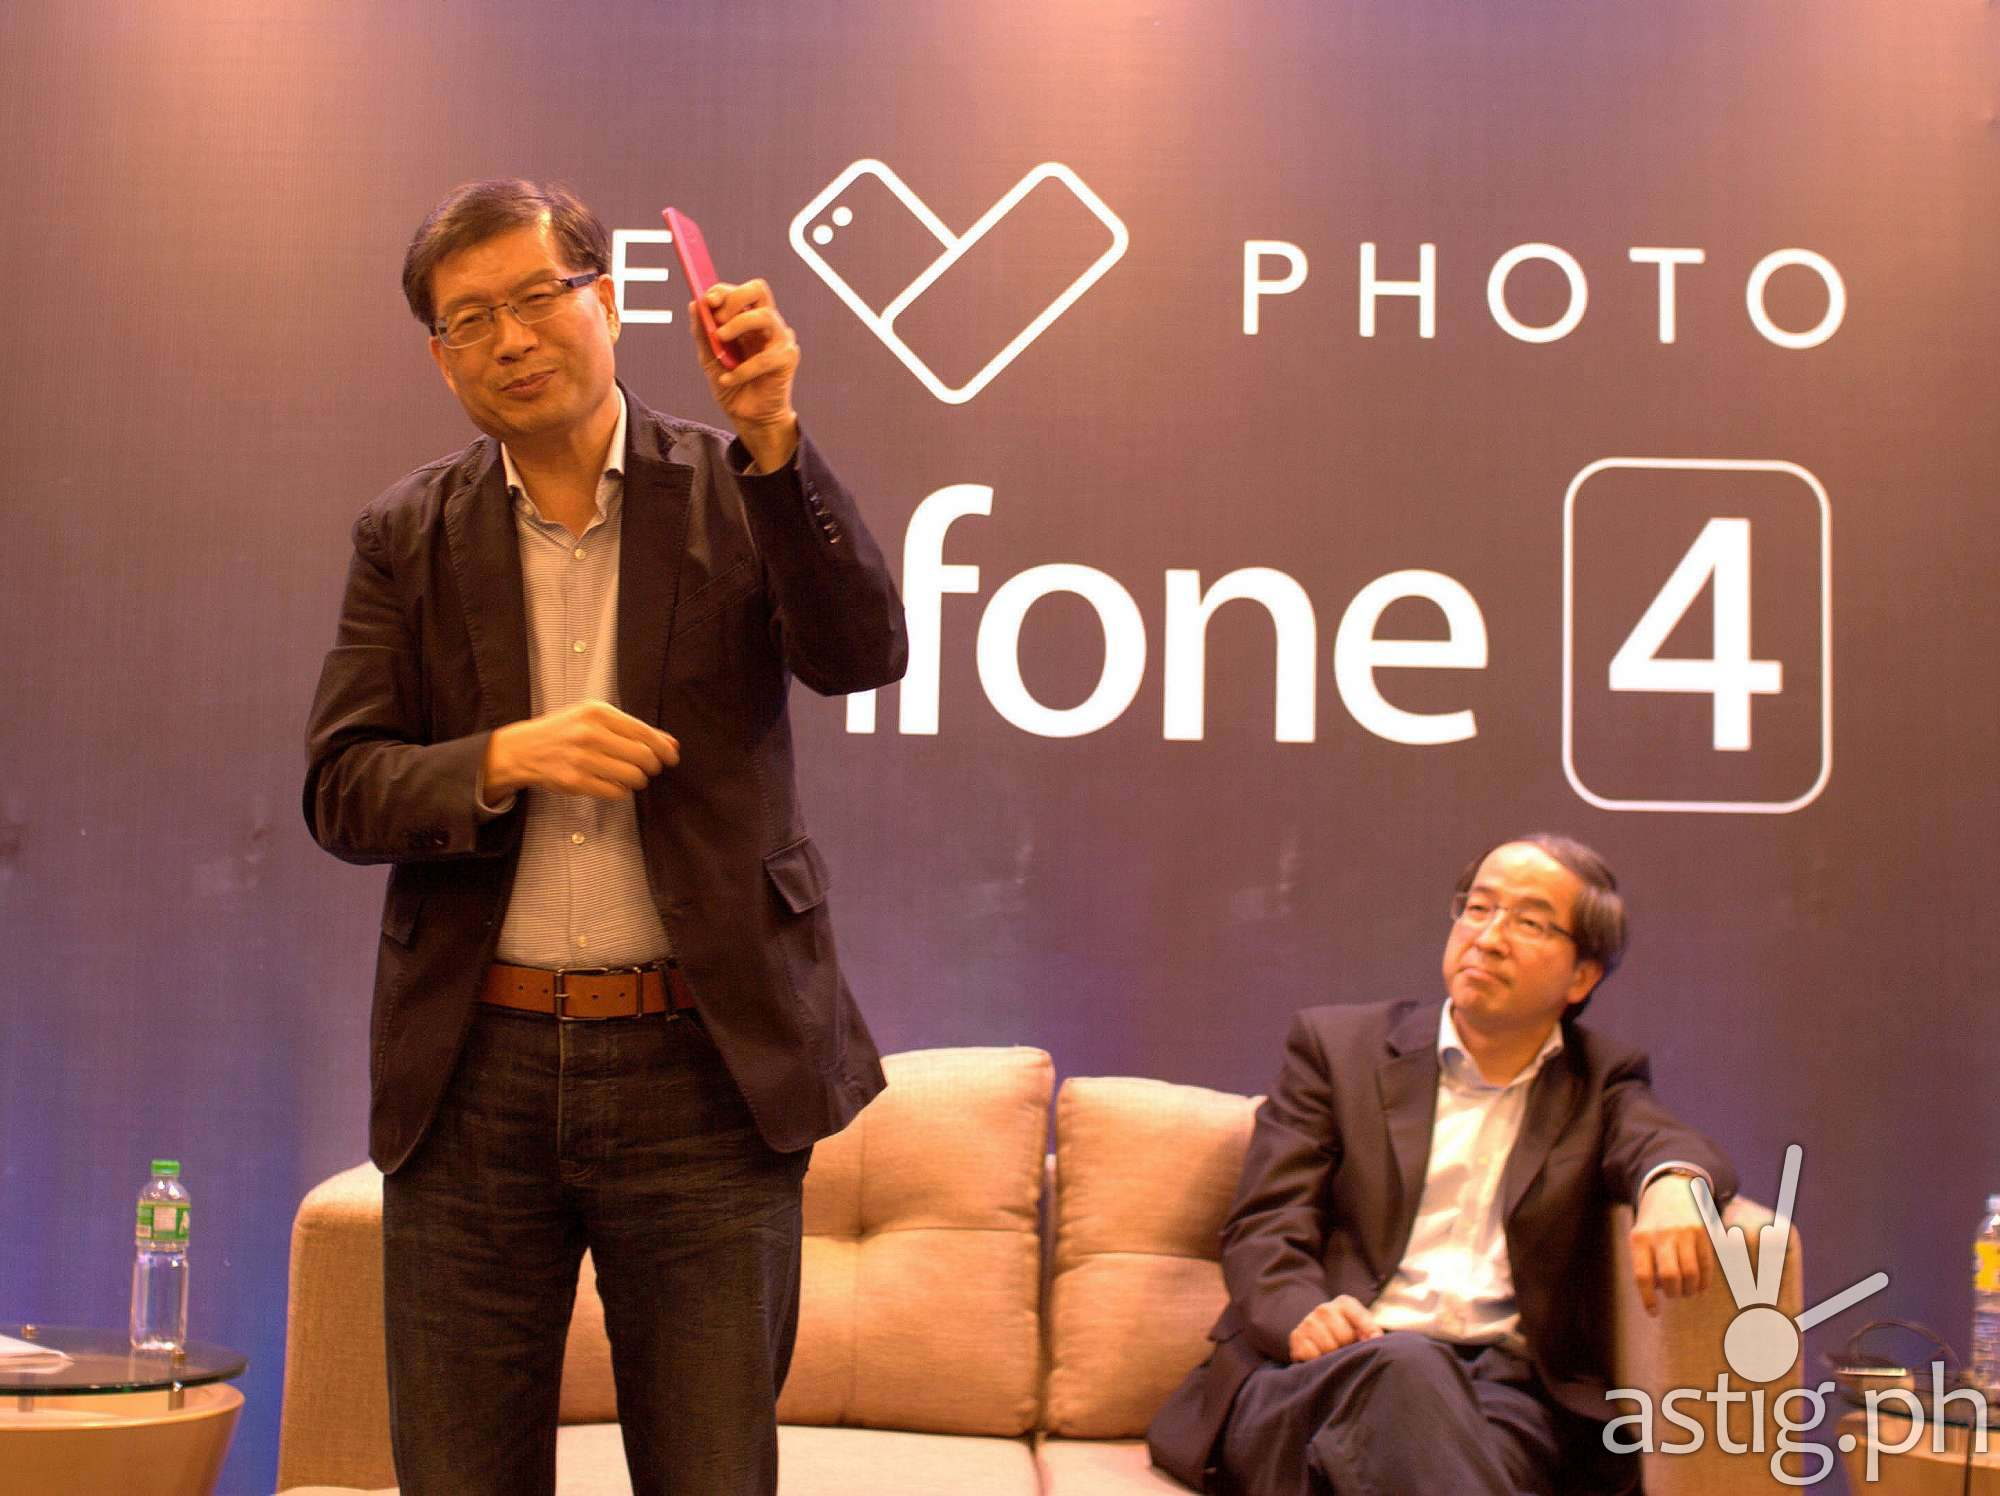 ASUS CEO Jerry Shen at the launch of the Zenfone 4